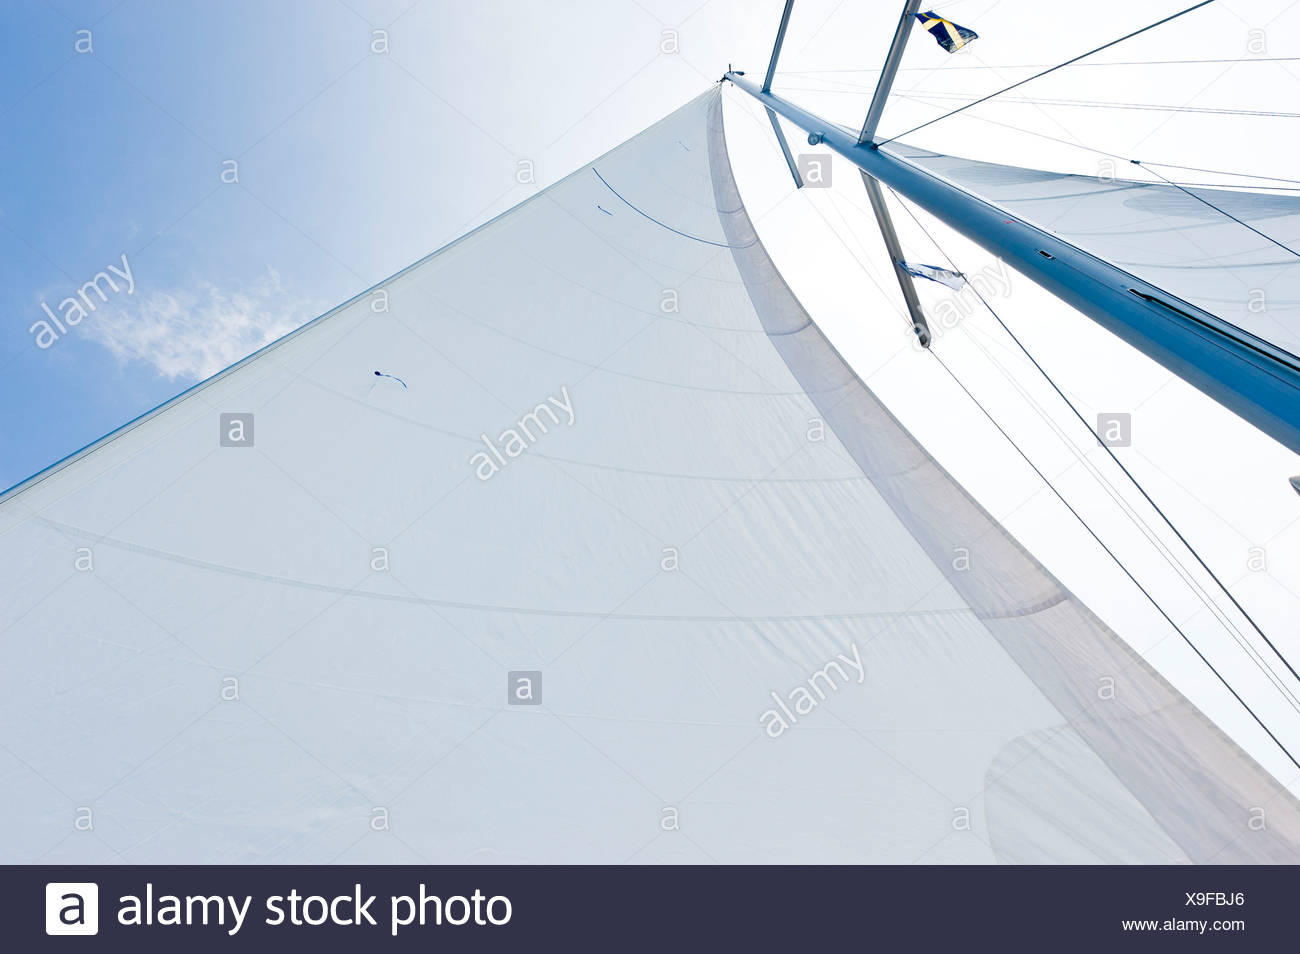 Close-up of a sail bermuda rigged against the sky - Stock Image